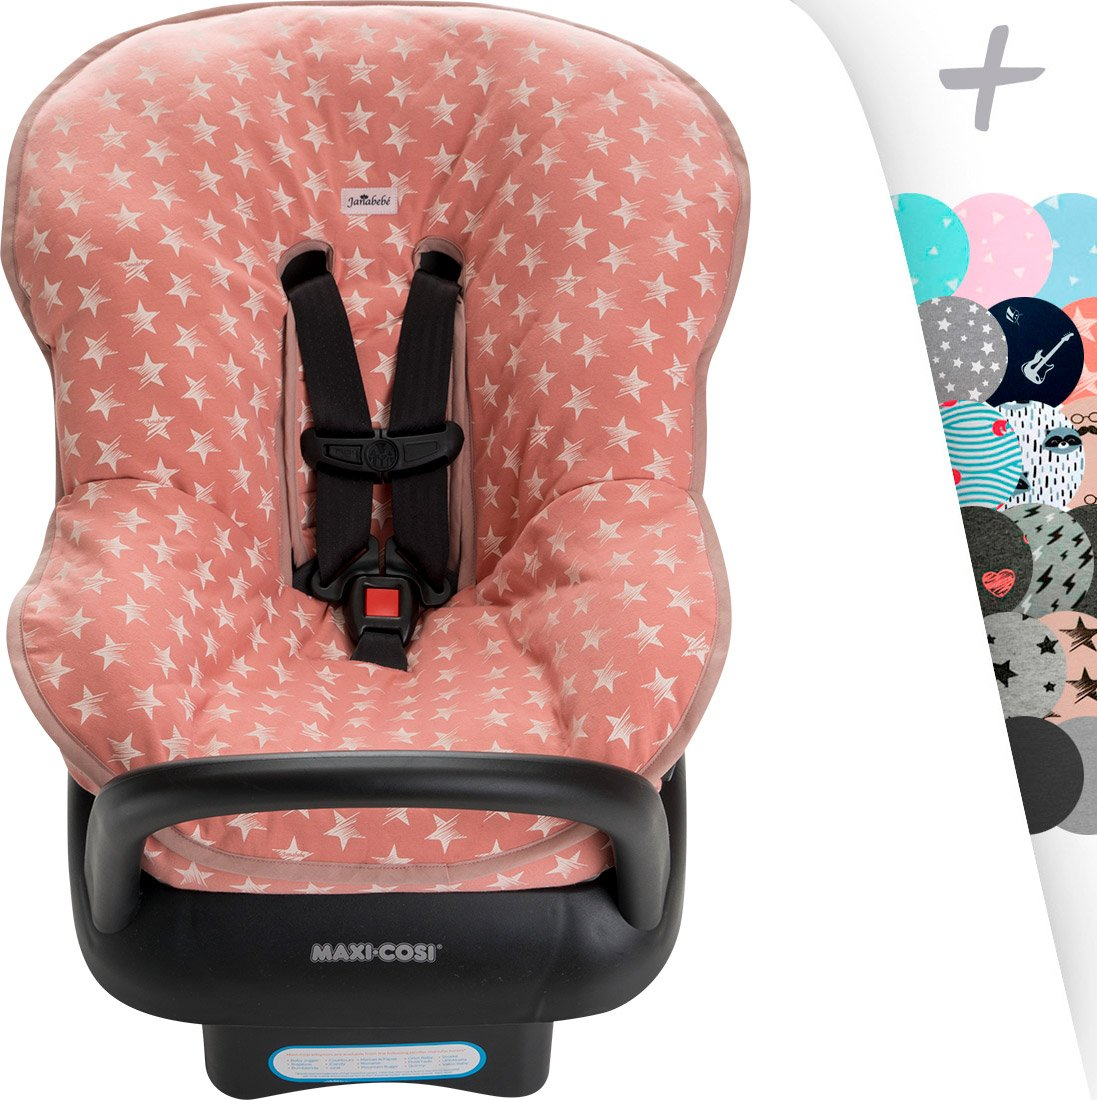 Universal Padded Cover Liner for Baby Carriers and CAR SEAT (Maxi COSI MICO, CHICCO, BRITAX, ETC) by Janabebe (Pink Star) UN/FU01/054/250